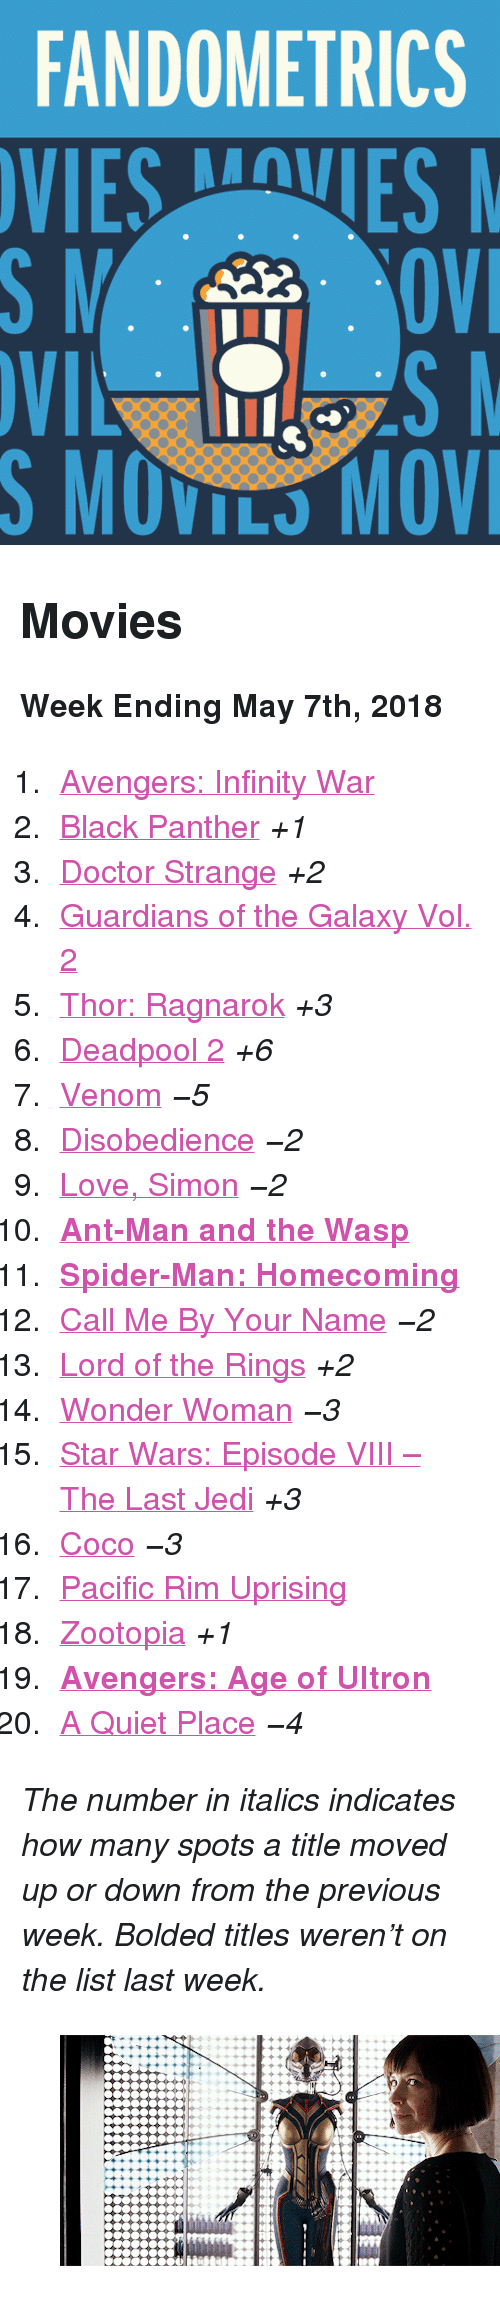 "the wasp: FANDOMETRICS  SMOVILS MOV <h2>Movies</h2><p><b>Week Ending May 7th, 2018</b></p><ol><li><a href=""http://www.tumblr.com/search/infinity%20war"">Avengers: Infinity War</a></li>  <li><a href=""http://www.tumblr.com/search/black%20panther"">Black Panther</a> <i>+1</i></li>  <li><a href=""http://www.tumblr.com/search/doctor%20strange"">Doctor Strange</a> <i>+2</i></li>  <li><a href=""http://www.tumblr.com/search/guardians%20of%20the%20galaxy"">Guardians of the Galaxy Vol. 2</a></li>  <li><a href=""http://www.tumblr.com/search/thor%20ragnarok"">Thor: Ragnarok</a> <i>+3</i></li>  <li><a href=""http://www.tumblr.com/search/deadpool"">Deadpool 2</a> <i>+6</i></li>  <li><a href=""http://www.tumblr.com/search/venom"">Venom</a> <i><i>−5</i></i></li>  <li><a href=""http://www.tumblr.com/search/disobedience"">Disobedience</a> <i><i>−2</i></i></li>  <li><a href=""http://www.tumblr.com/search/love%20simon"">Love, Simon</a> <i><i>−2</i></i></li>  <li><a href=""http://www.tumblr.com/search/ant%20man""><b>Ant-Man and the Wasp</b></a></li>  <li><a href=""http://www.tumblr.com/search/spiderman%20homecoming""><b>Spider-Man: Homecoming</b></a></li>  <li><a href=""http://www.tumblr.com/search/call%20me%20by%20your%20name"">Call Me By Your Name</a> <i><i>−2</i></i></li>  <li><a href=""http://www.tumblr.com/search/lotr"">Lord of the Rings</a> <i>+2</i></li>  <li><a href=""http://www.tumblr.com/search/wonder%20woman"">Wonder Woman</a> <i><i>−3</i></i></li>  <li><a href=""http://www.tumblr.com/search/the%20last%20jedi"">Star Wars: Episode VIII – The Last Jedi</a> <i>+3</i></li>  <li><a href=""http://www.tumblr.com/search/coco"">Coco</a> <i><i>−3</i></i></li>  <li><a href=""http://www.tumblr.com/search/pacific%20rim"">Pacific Rim Uprising</a></li>  <li><a href=""http://www.tumblr.com/search/zootopia"">Zootopia</a> <i>+1</i></li>  <li><a href=""http://www.tumblr.com/search/age%20of%20ultron""><b>Avengers: Age of Ultron</b></a></li>  <li><a href=""http://www.tumblr.com/search/a%20quiet%20place"">A Quiet Place</a> <i><i>−4</i></i></li></ol><p><i>The number in italics indicates how many spots a title moved up or down from the previous week. Bolded titles weren't on the list last week.</i></p><figure class=""tmblr-full"" data-orig-height=""151"" data-orig-width=""268"" data-tumblr-attribution=""comicbookfilms:6cMY4FYbTPoP2qDLiEFeig:ZskSek2XTa2sS""><img src=""https://78.media.tumblr.com/ae86024af96e3eb7bbda9696754ce216/tumblr_p7vbra3M9k1uuxzsno1_500.gif"" data-orig-height=""151"" data-orig-width=""268""/></figure>"